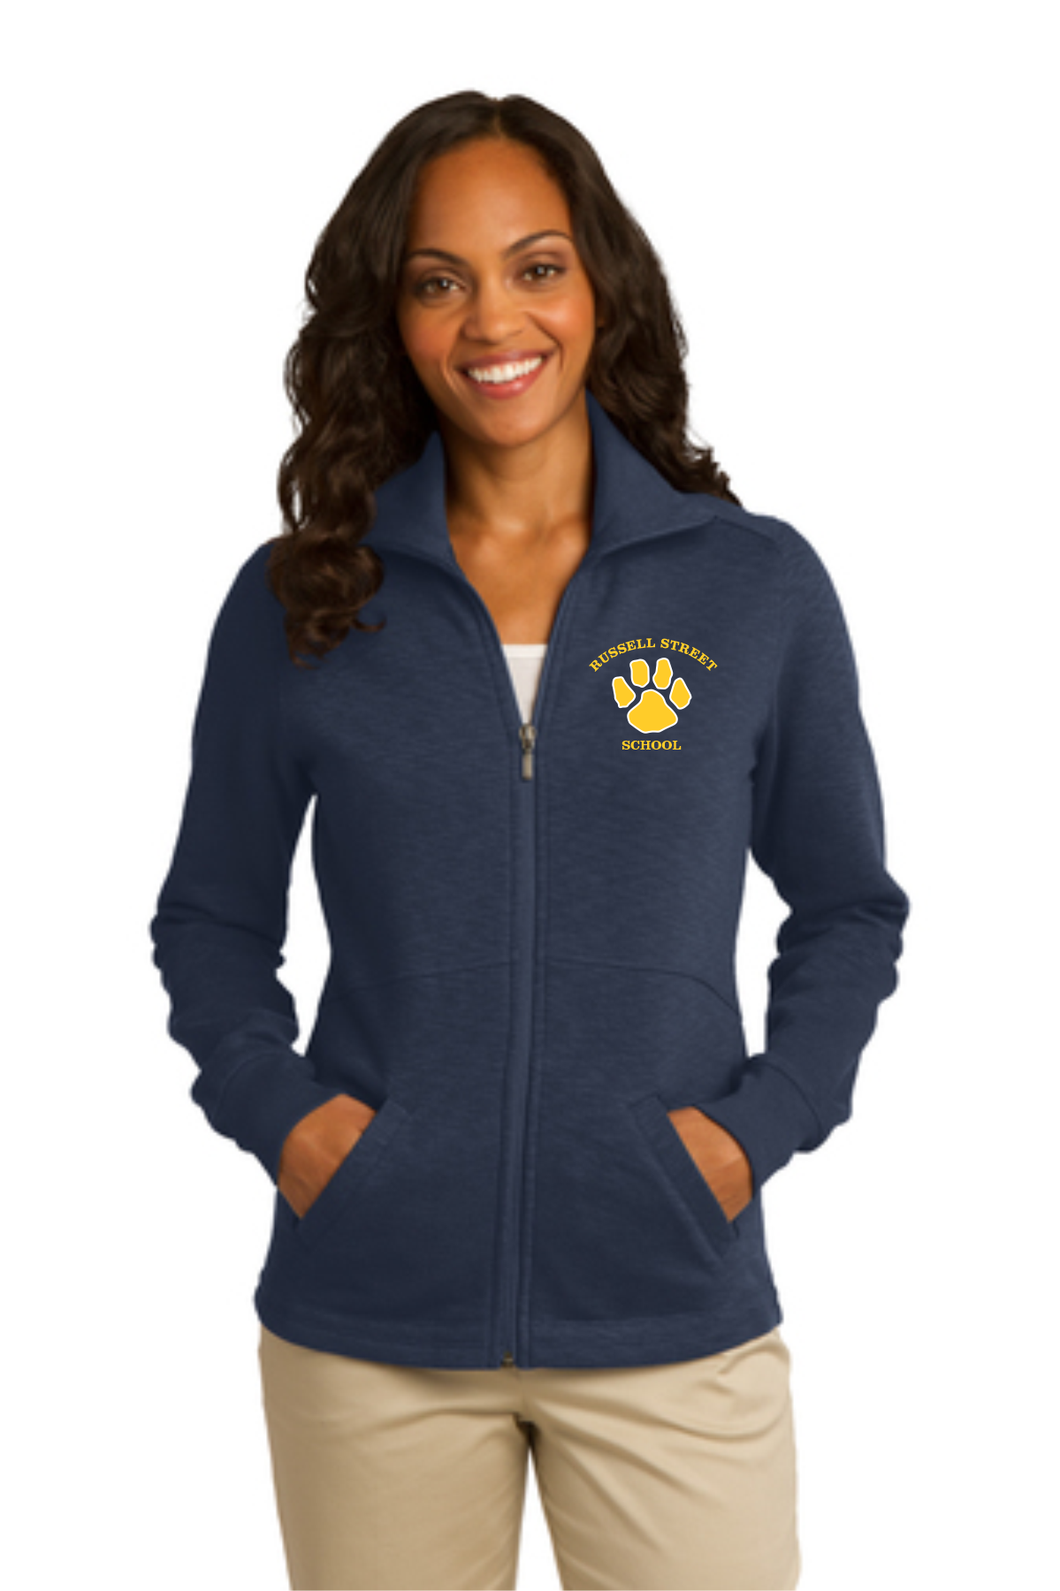 Russell Street School Ladies Slub Fleece Full Zip / Sanmar L293